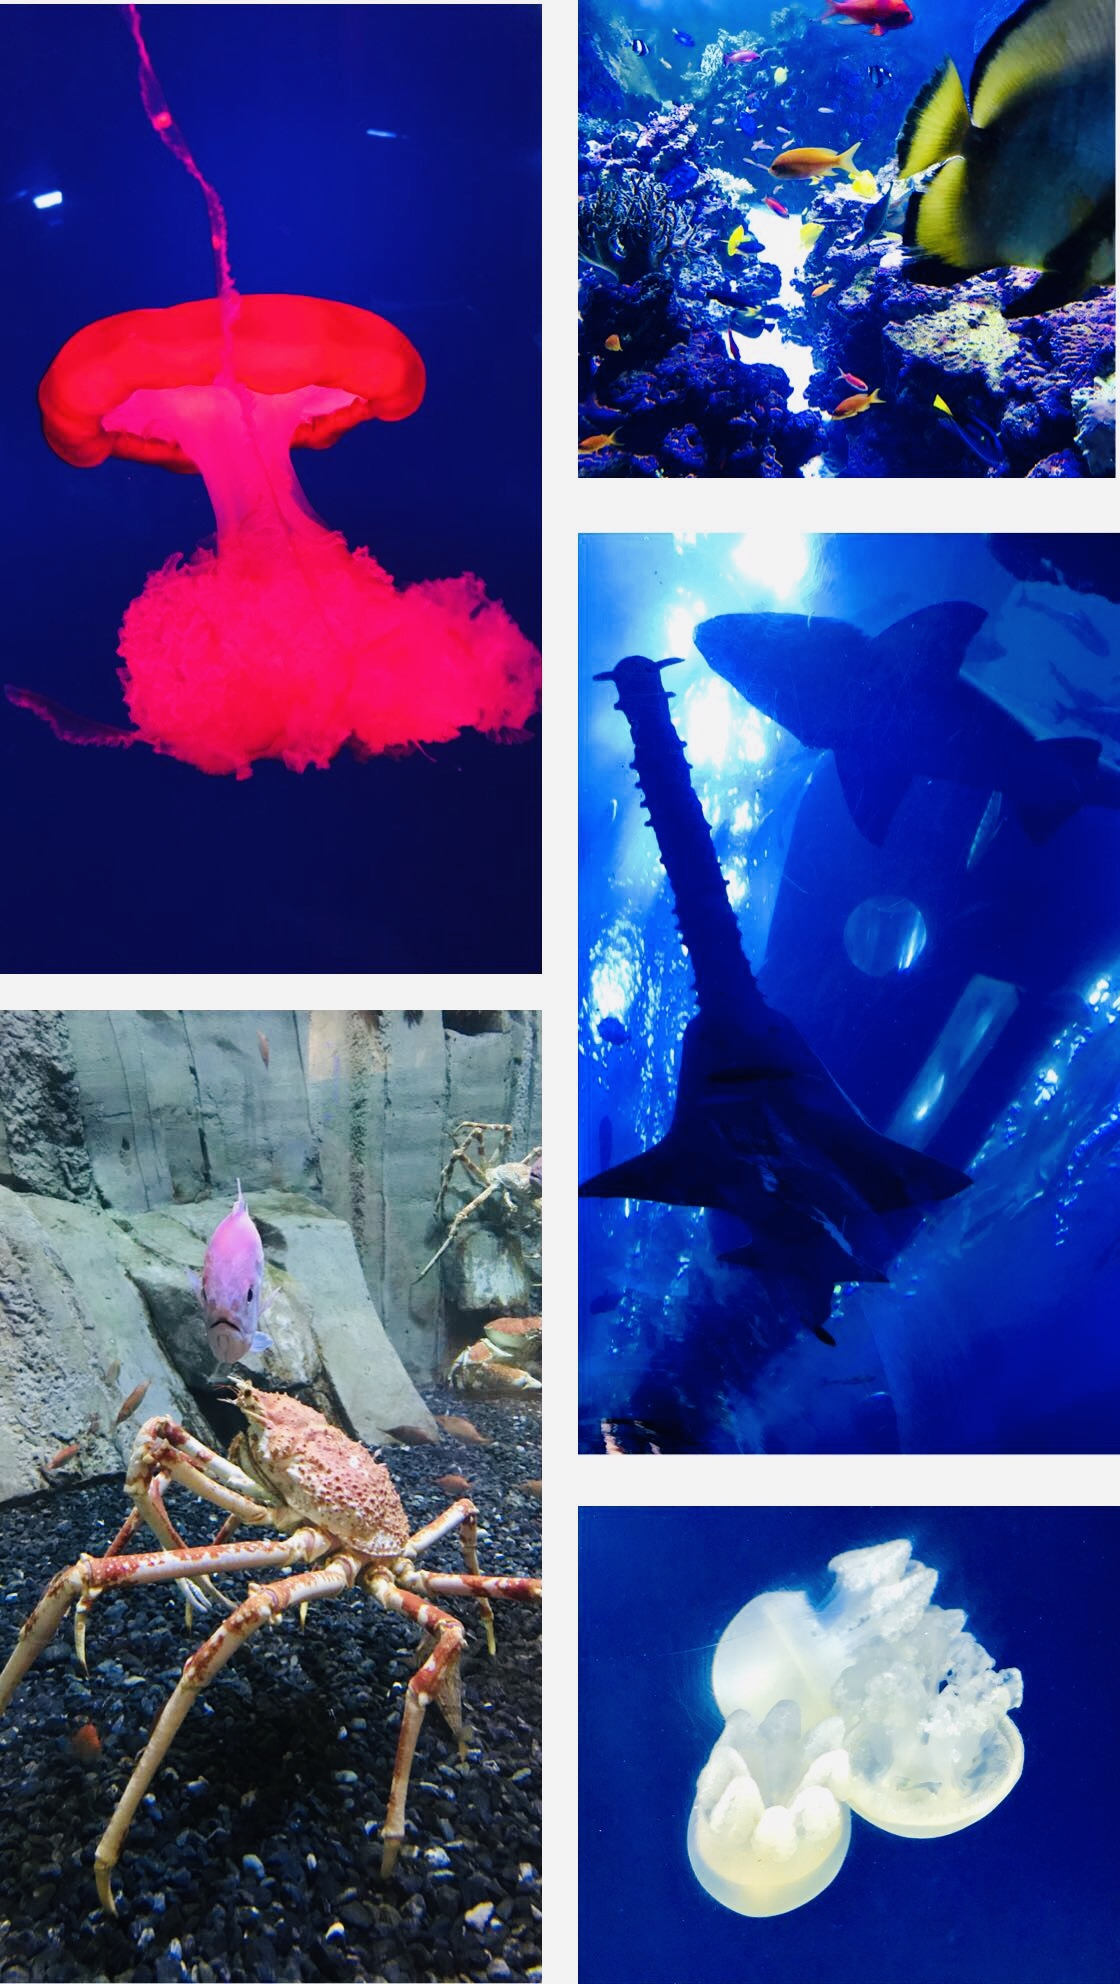 dubai-aquarium-dubai-mall-lustforthesublime